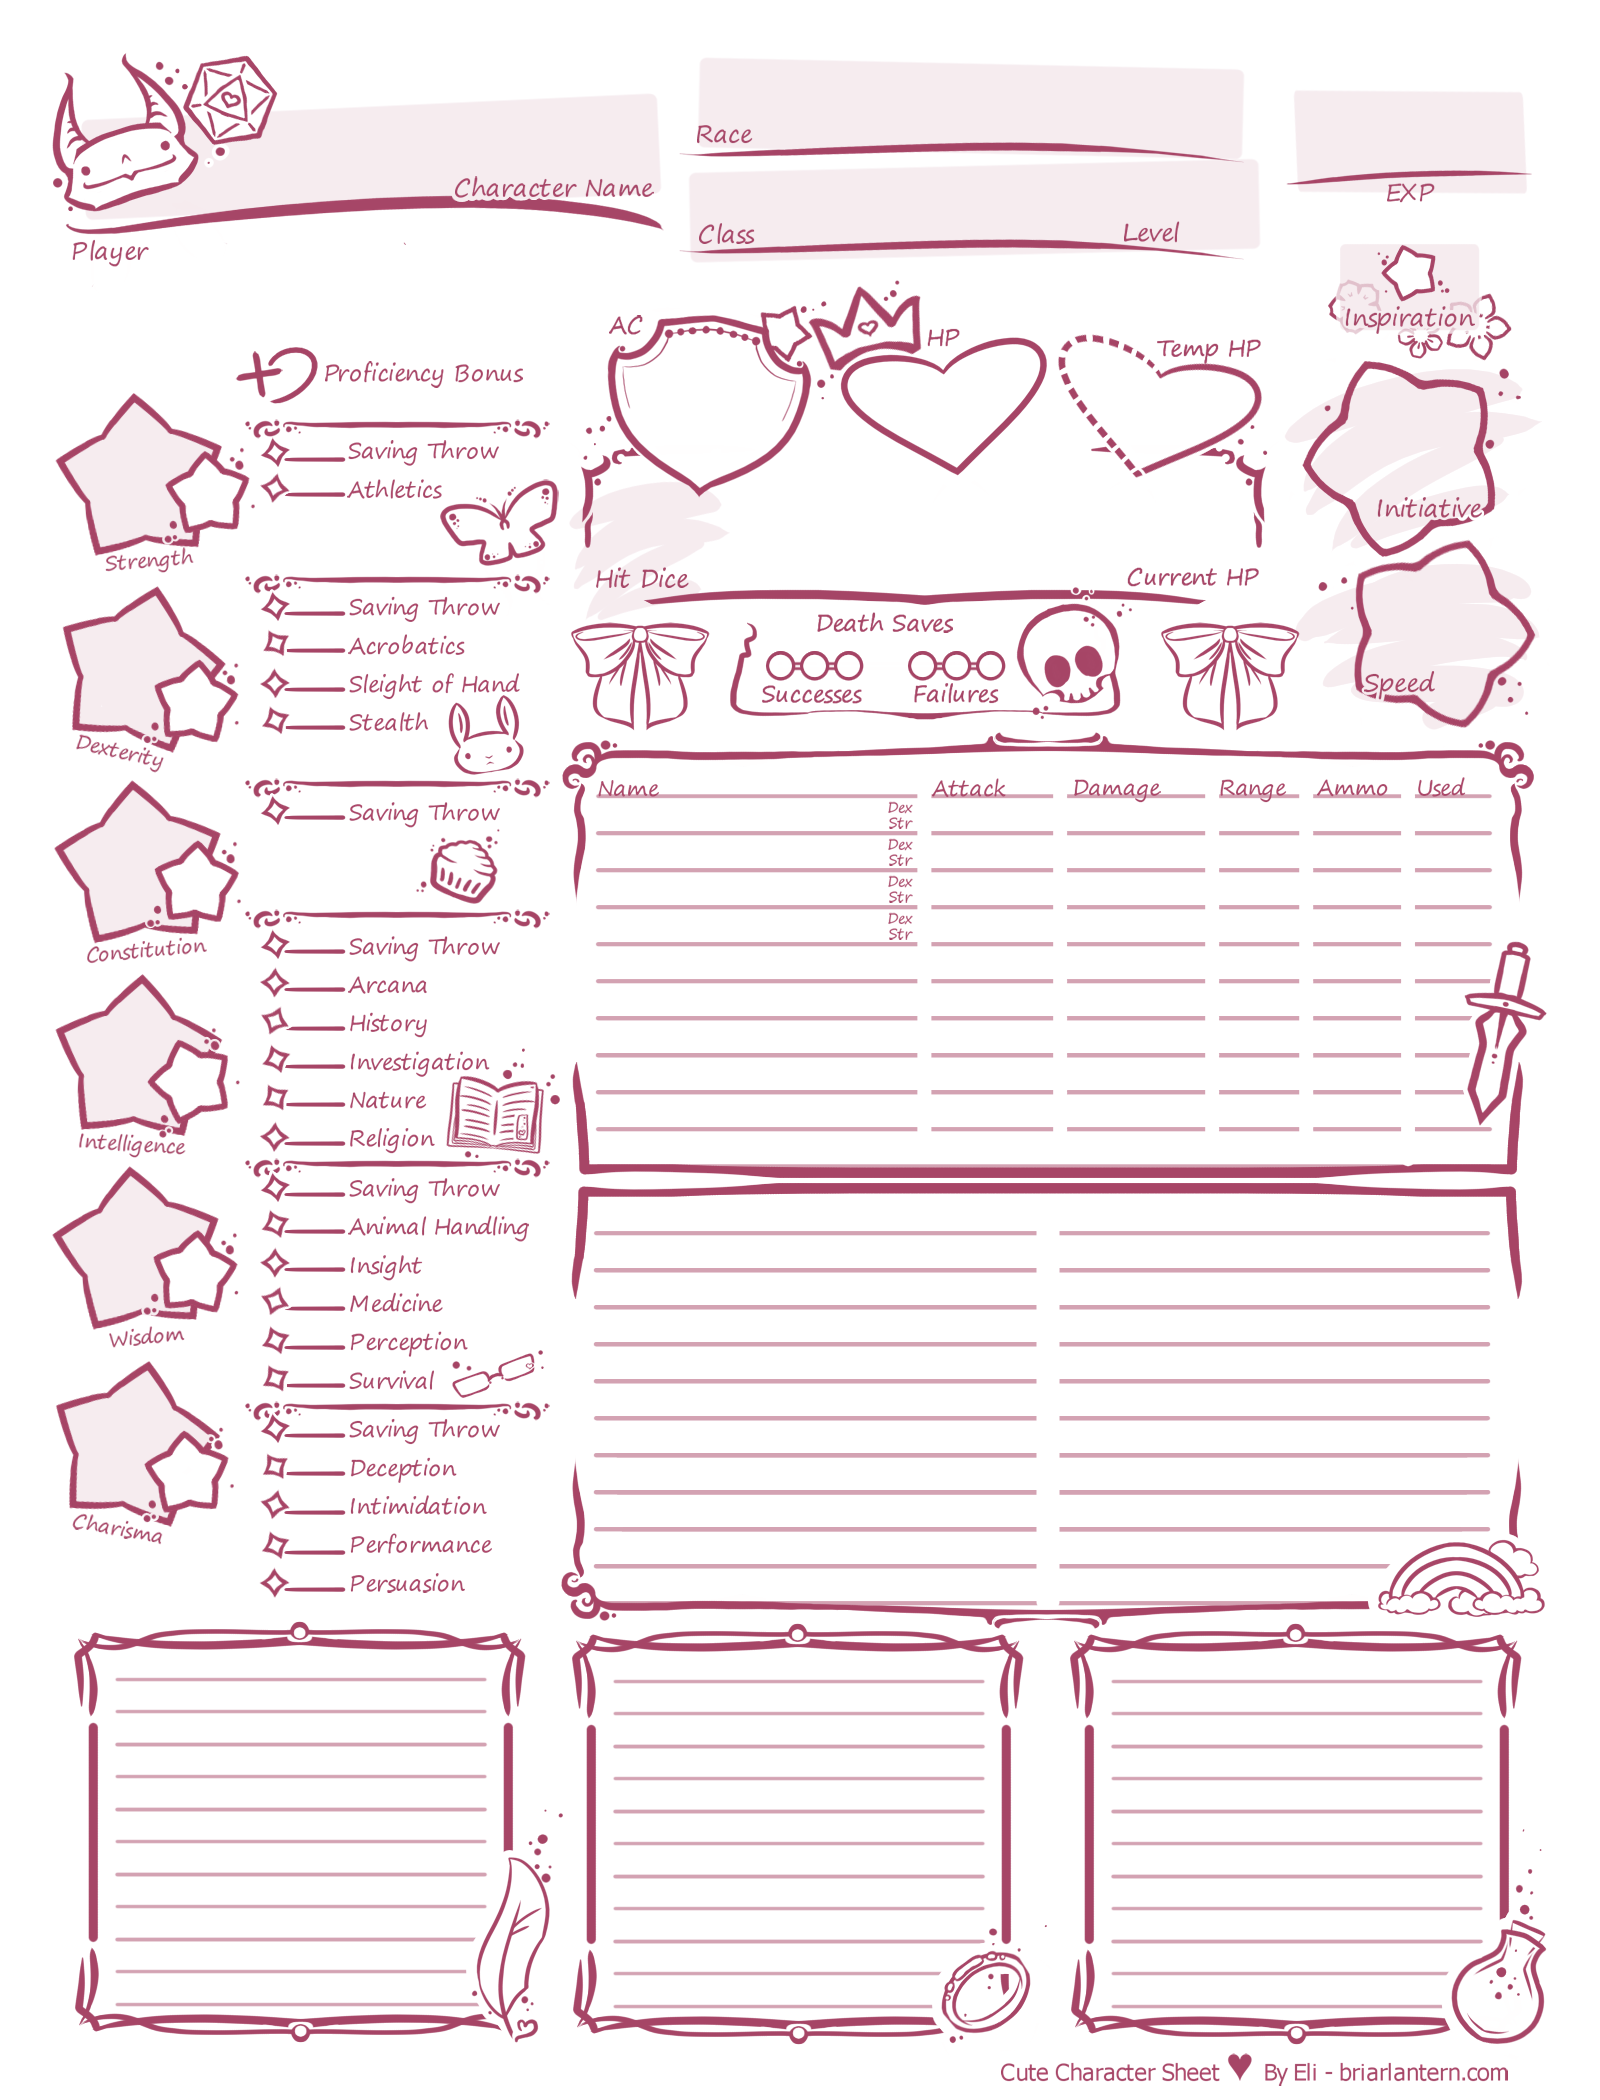 Cute Character Sheet 5th Edition These Sheets Are Free For Personal Use Pdf All Current Pages Pdf All Current Pages Black Character Sheet Only High Res Raster Pink High Res Raster Black Pdf Pink Pdf Black Pdf Pink With A Fillable Form